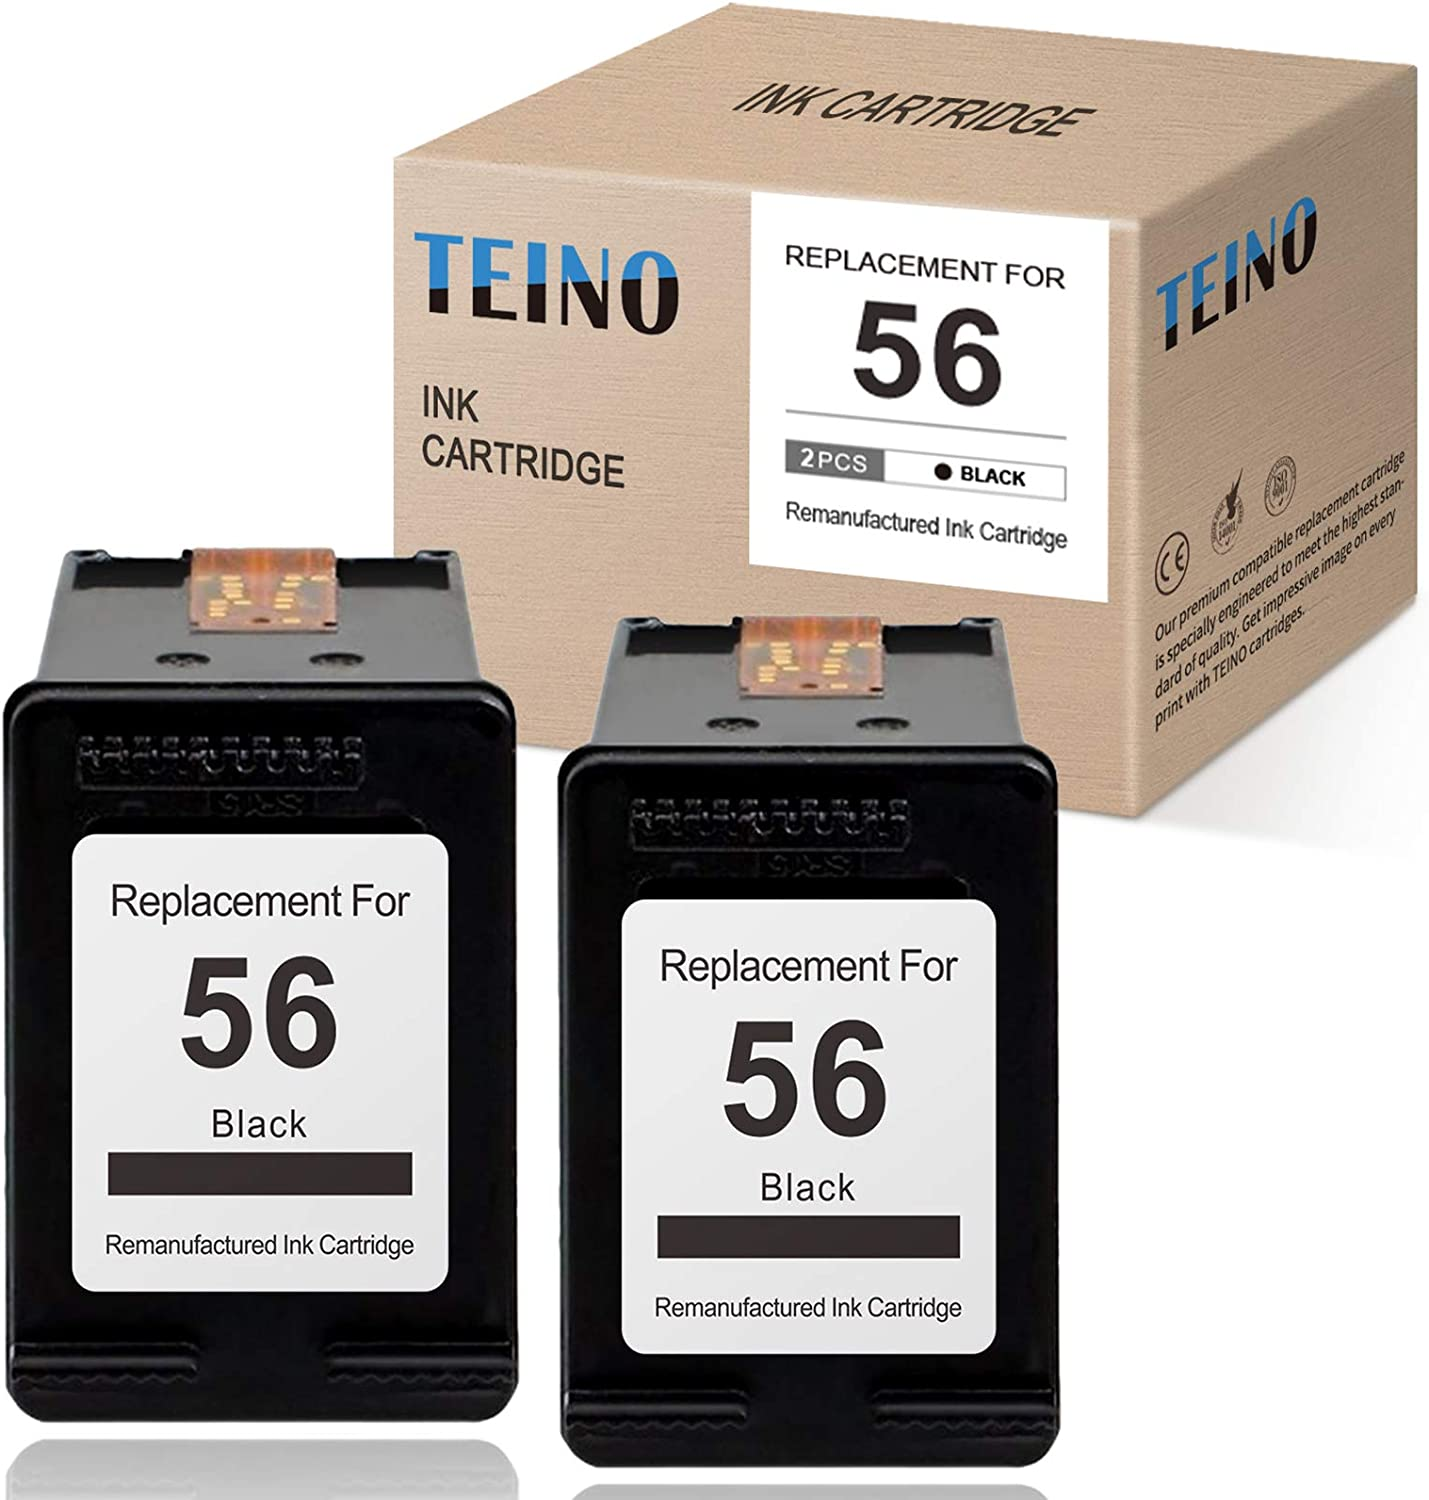 TEINO Remanufactured Ink Cartridge Replacement for HP 56 XL 56XL C6656AN use with HP DeskJet 5650 5550 5150 Photosmart 7760 7550 7450 7350 7260 7960 OfficeJet 5510 PSC 1200 2210 2410 (Black, 2-Pack)